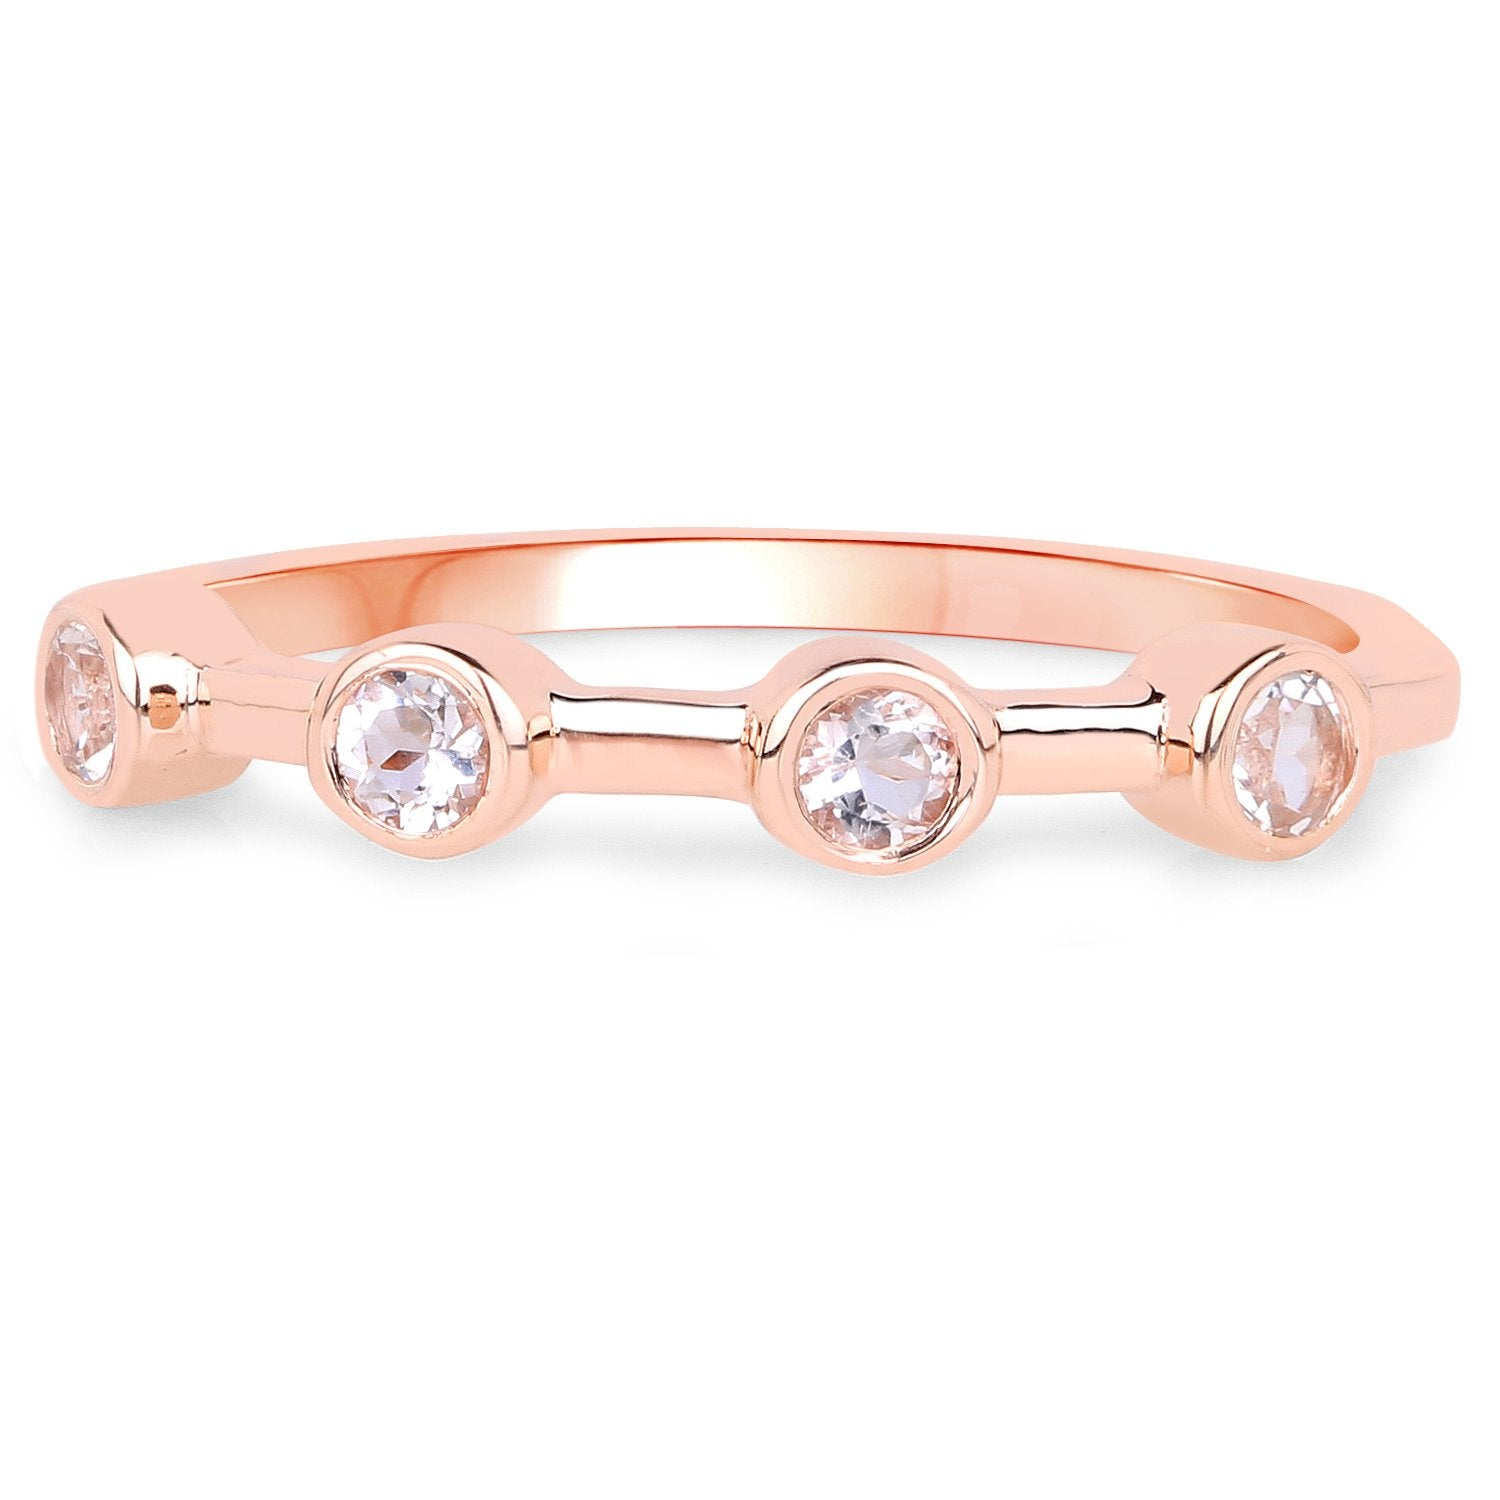 LoveHuang 0.22 Carats Genuine Morganite Art Deco Ring Solid .925 Sterling Silver With 18KT Rose Gold Plating